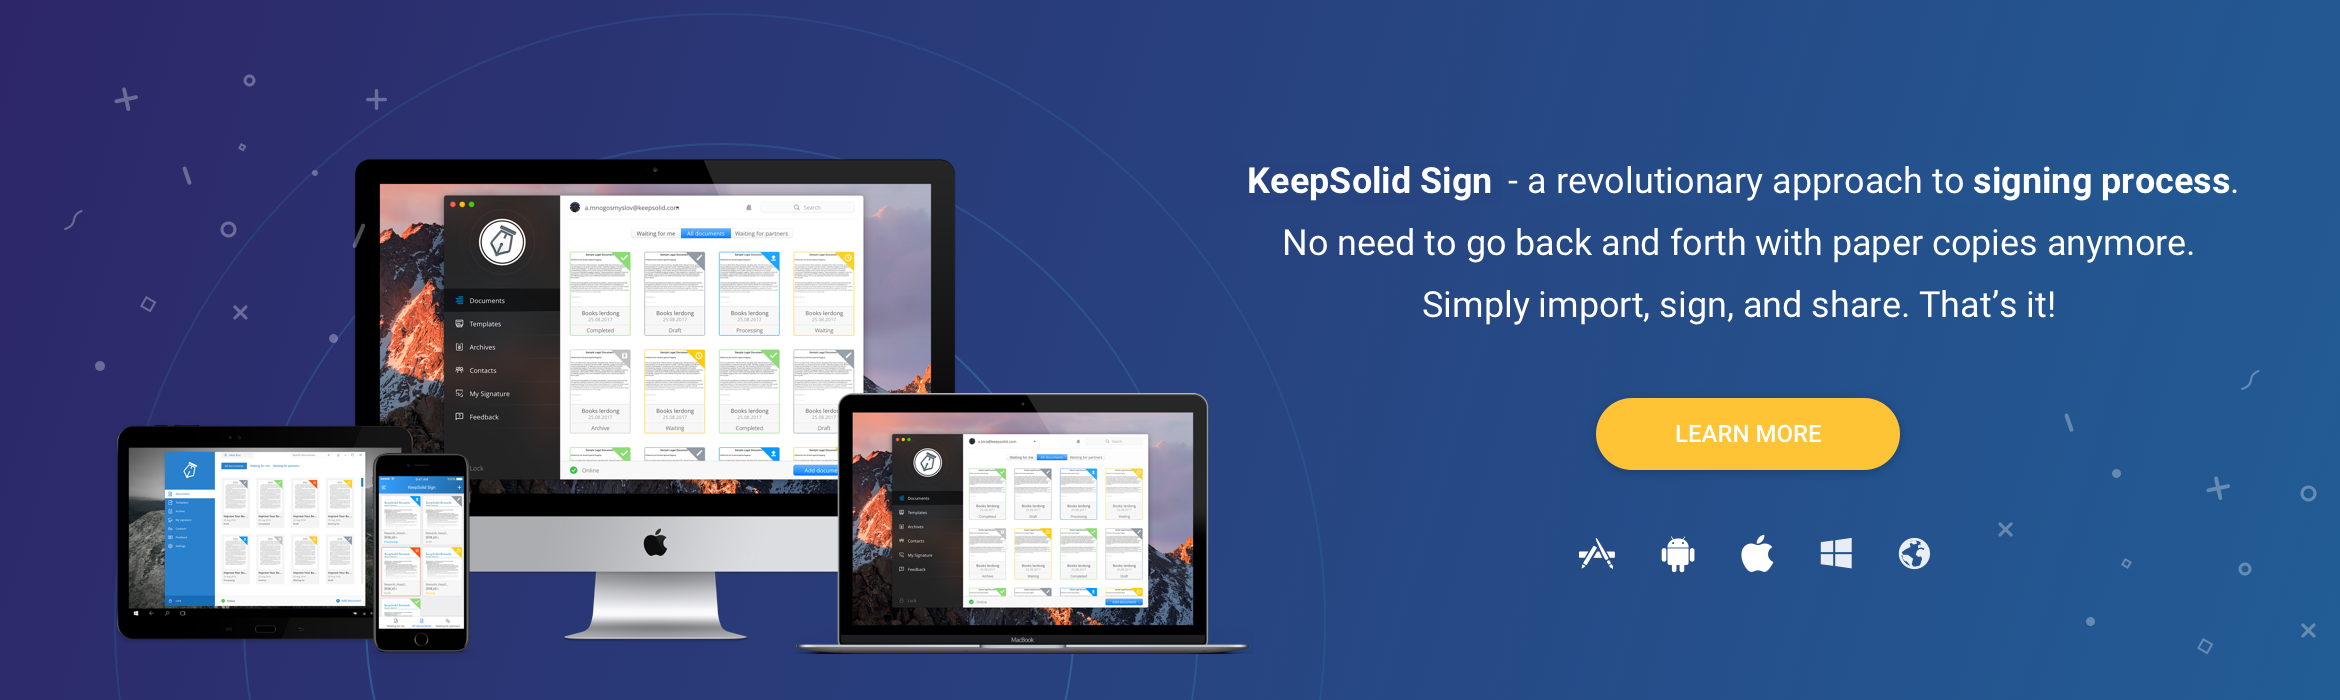 Rolling Out the Big Guns - KeepSolid Sign Official Release!